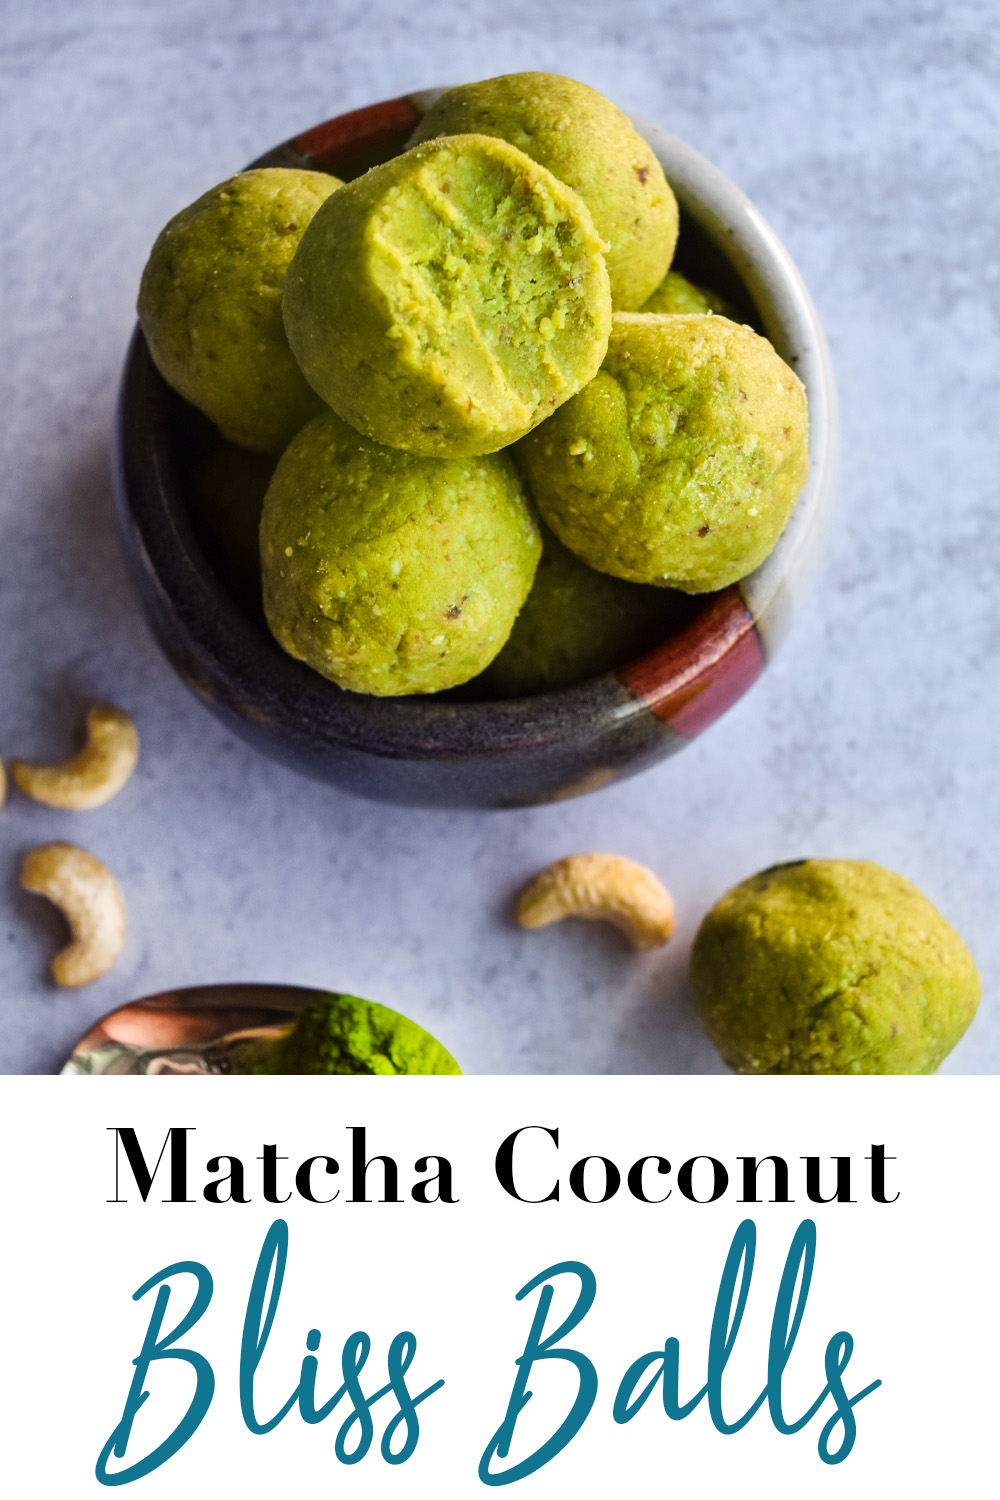 Matcha Coconut Bliss Balls Pin